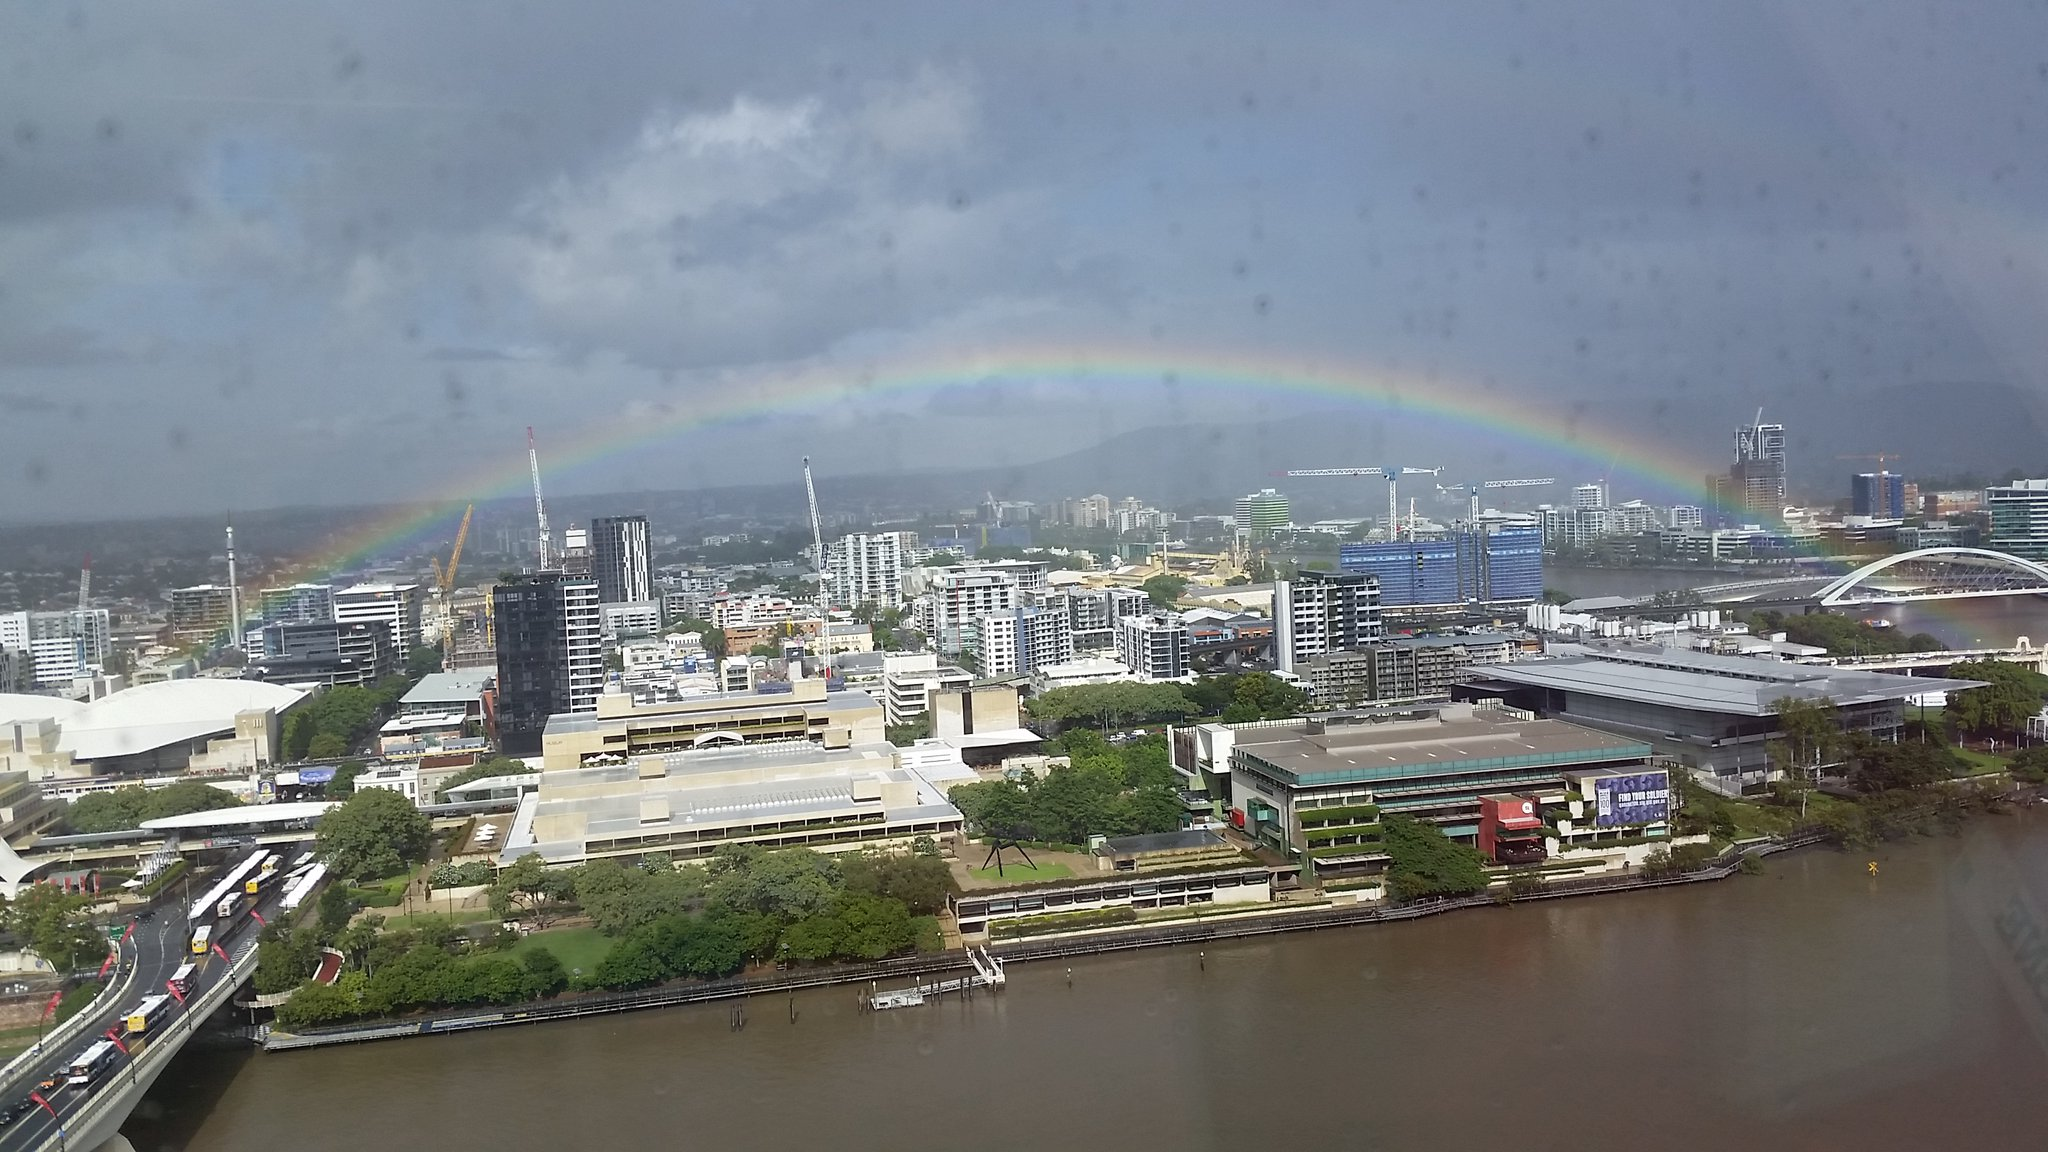 Rainbow over South Brisbane this morning. https://t.co/CQ1u7Xy3C4